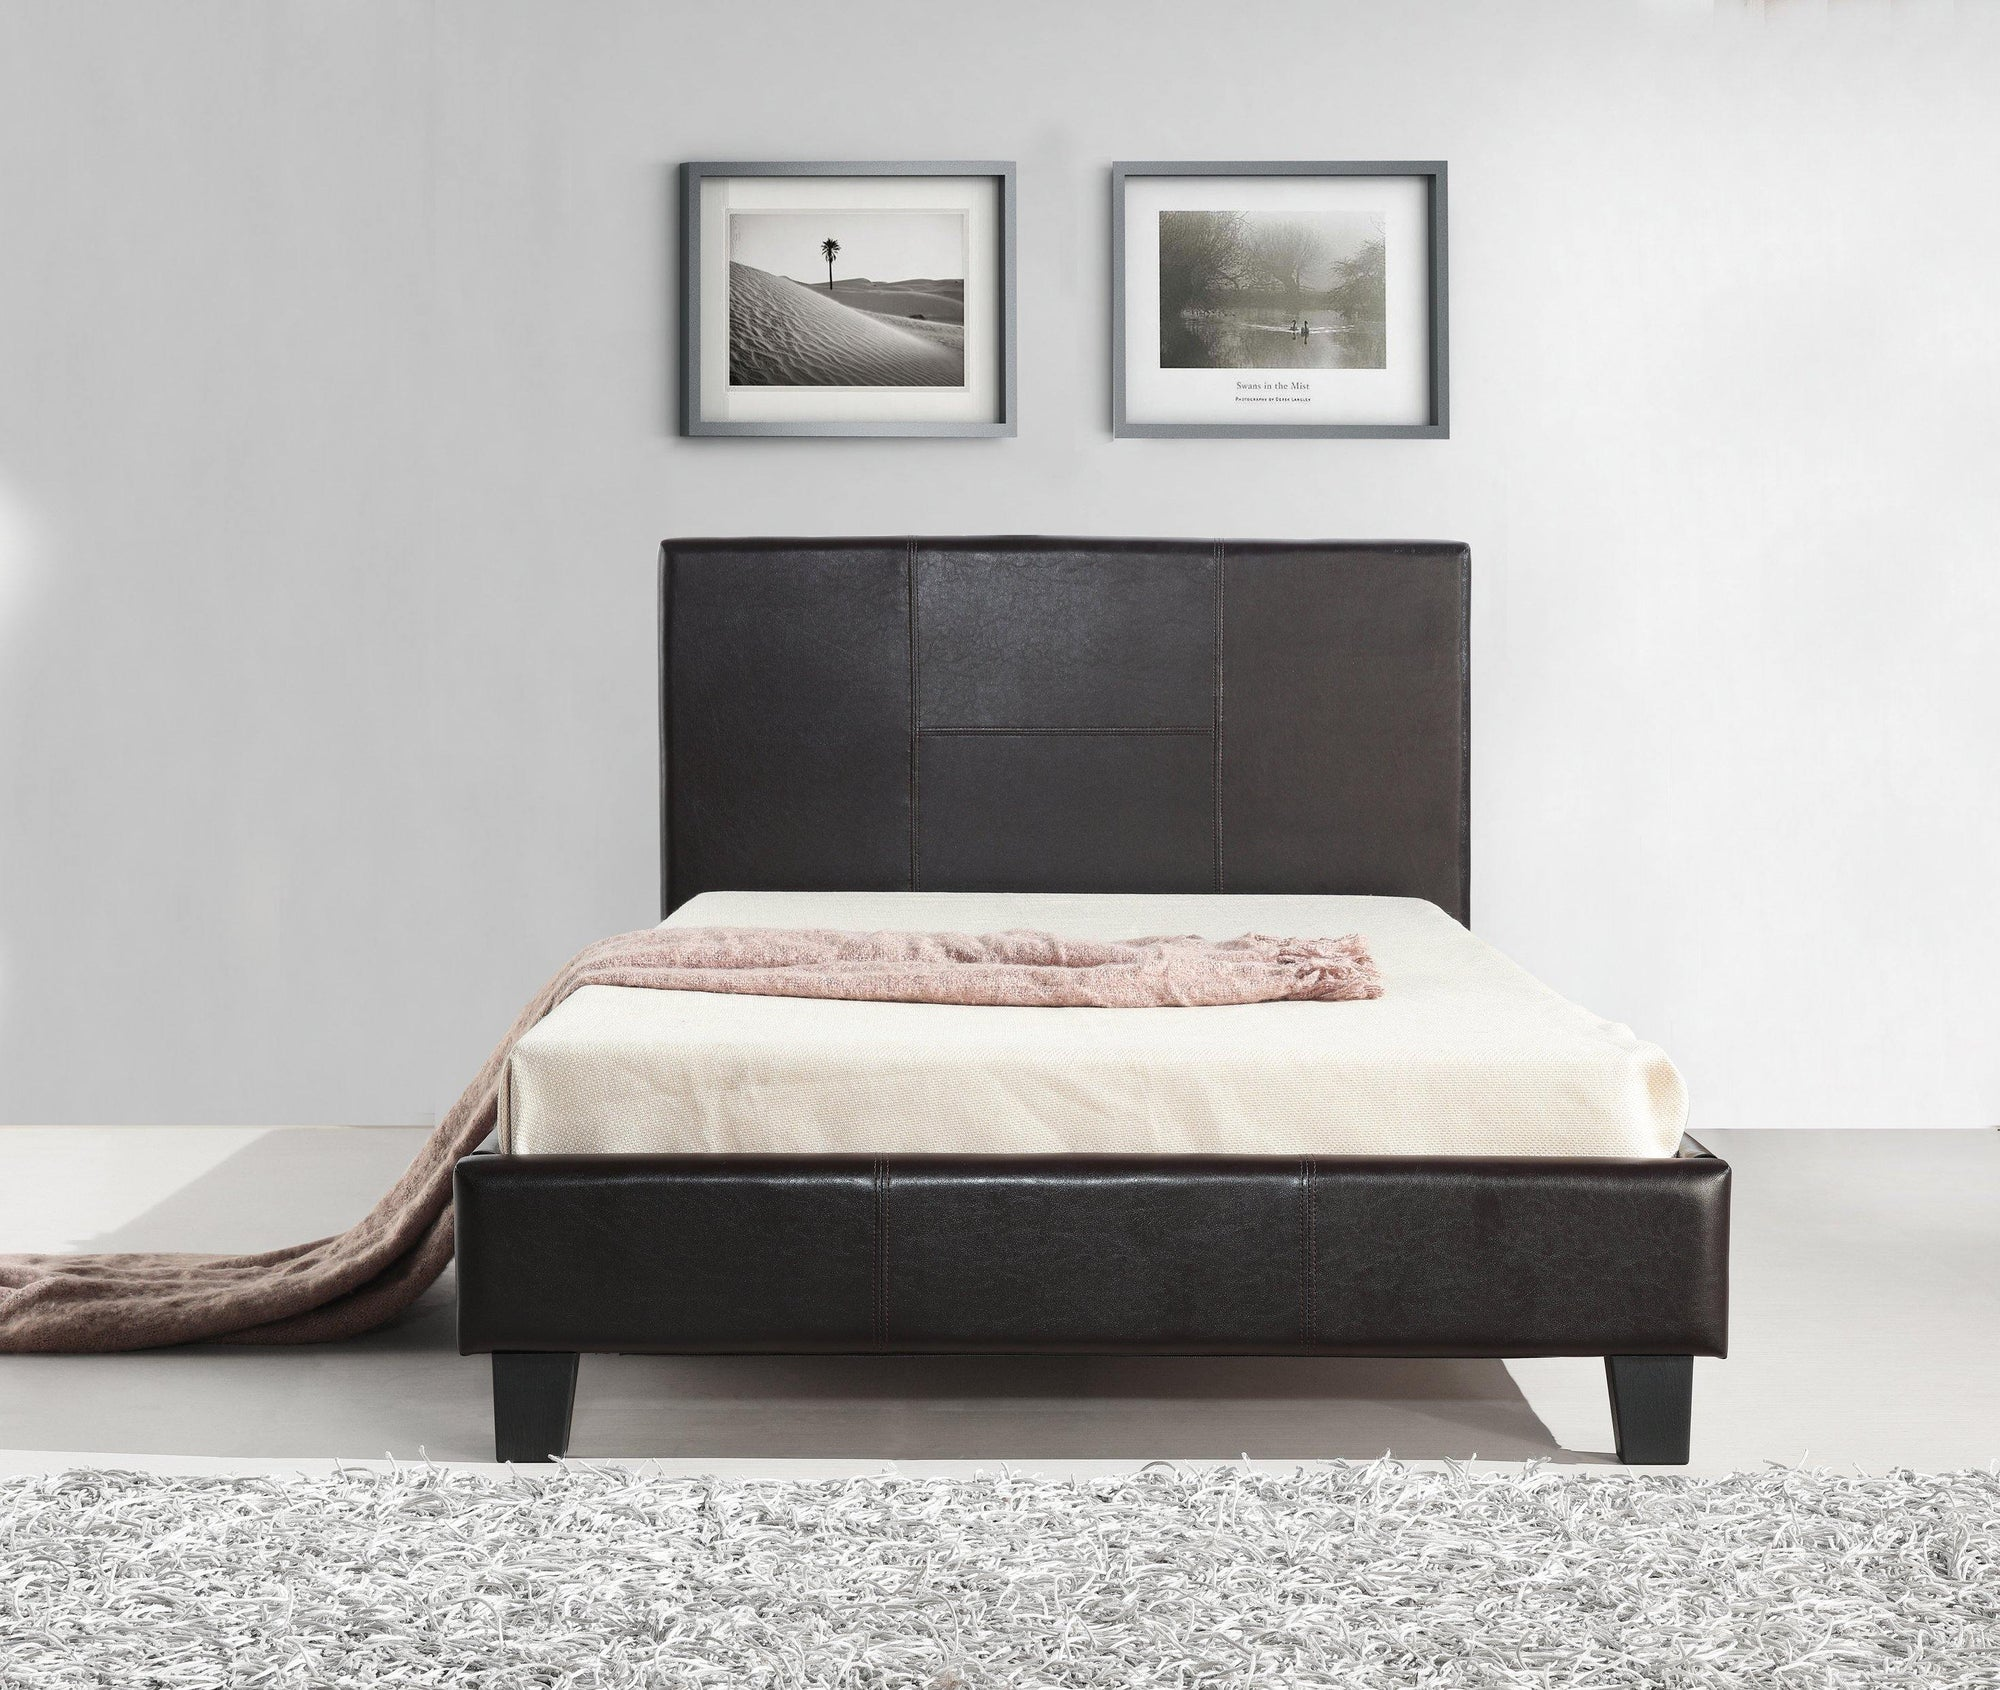 Palermo Brown Leather Bed Frame King Single - Evopia